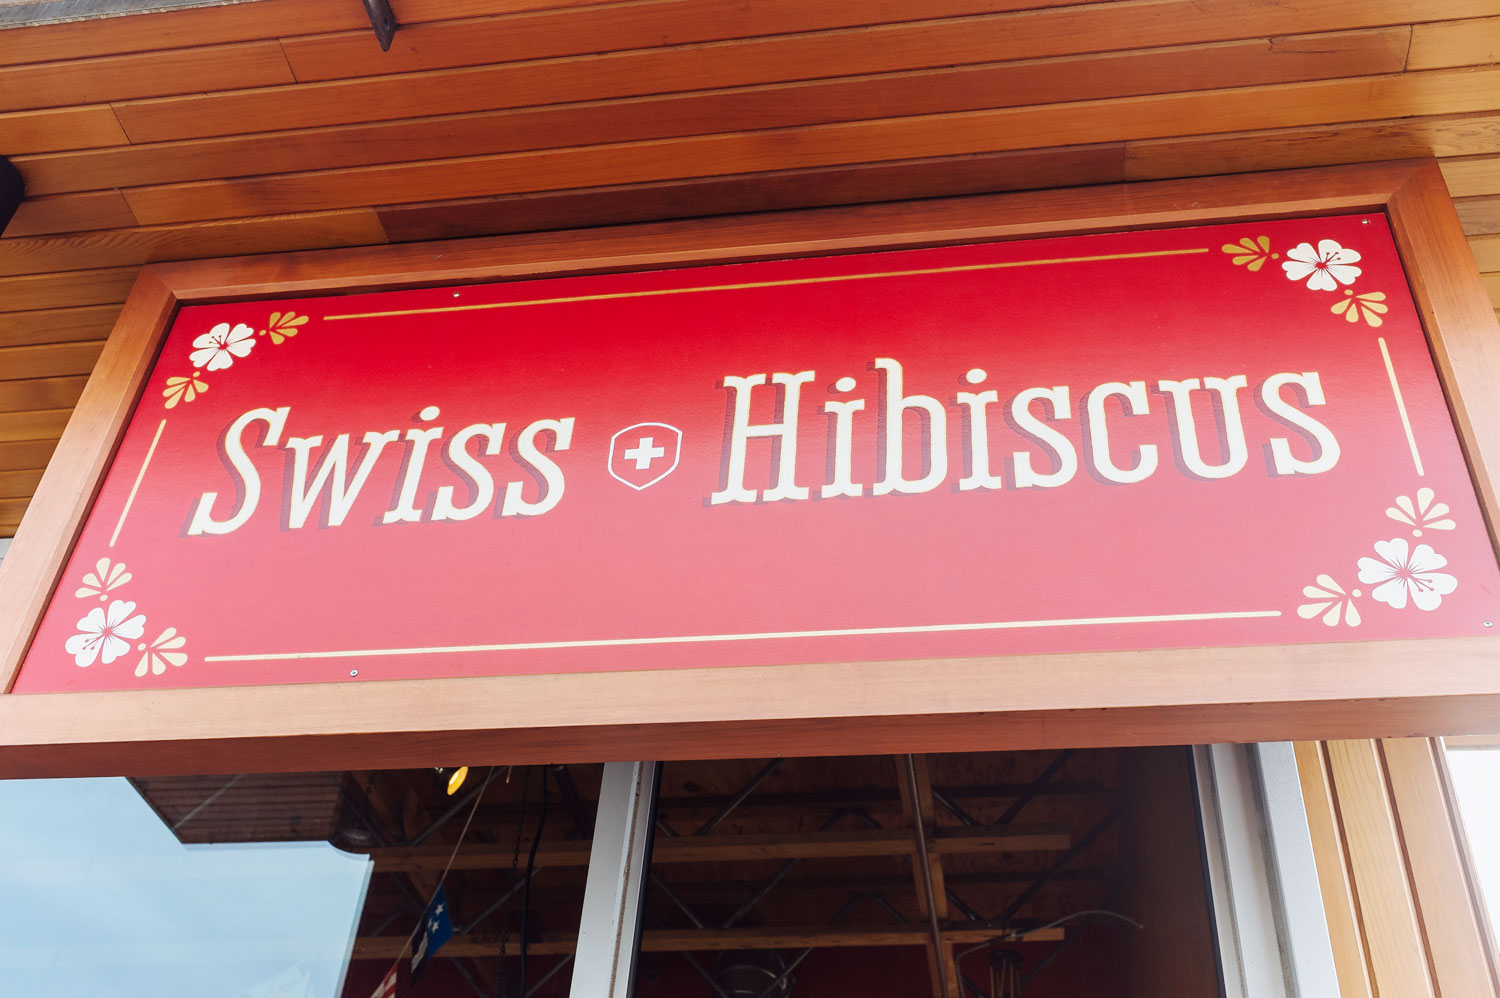 SWISS.Sign1.jpg